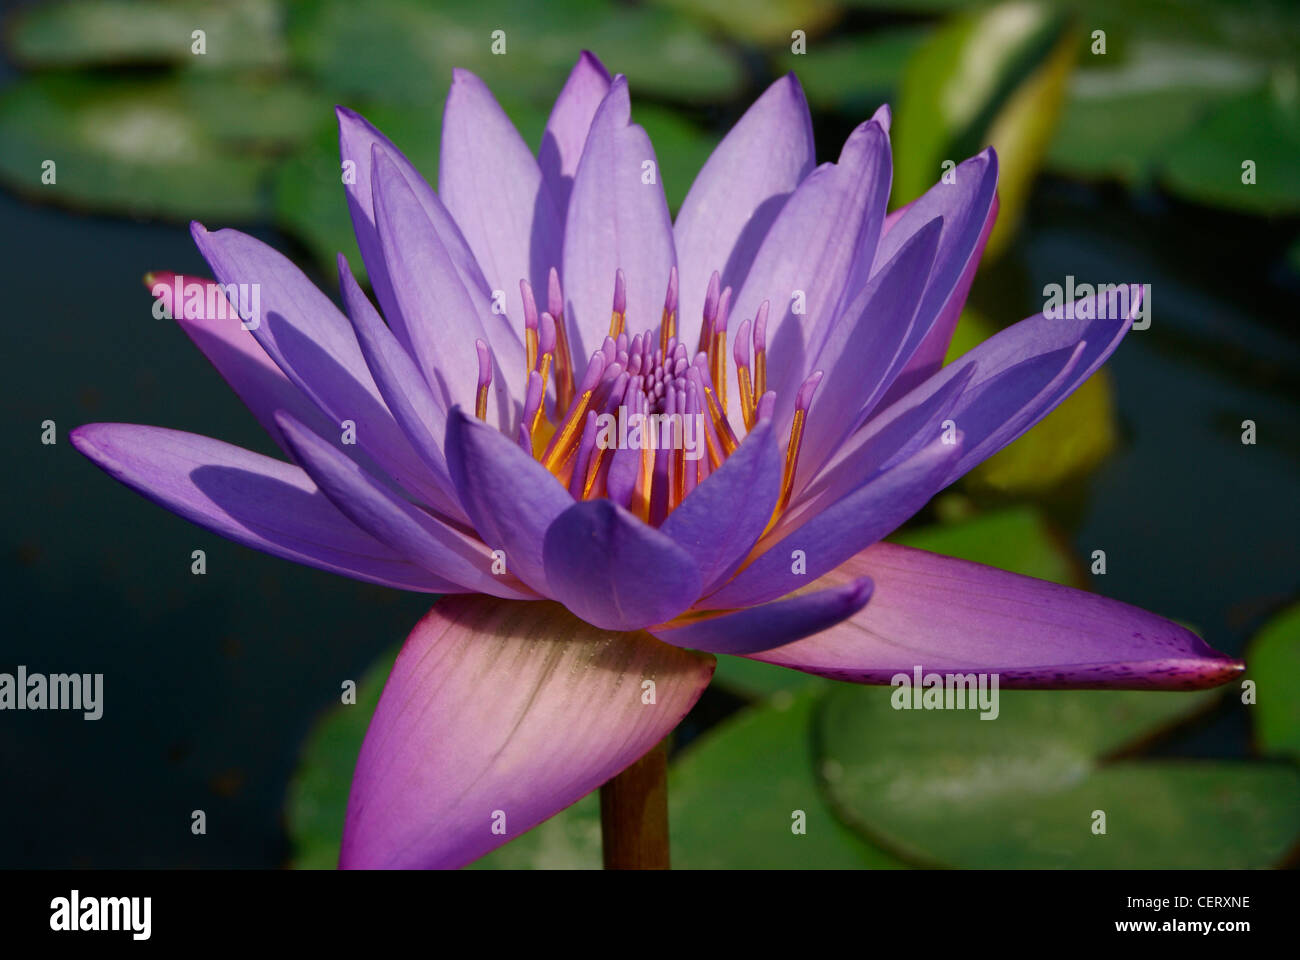 Blooming Violet Water Lotus Flower In Pond Shining In Morningde